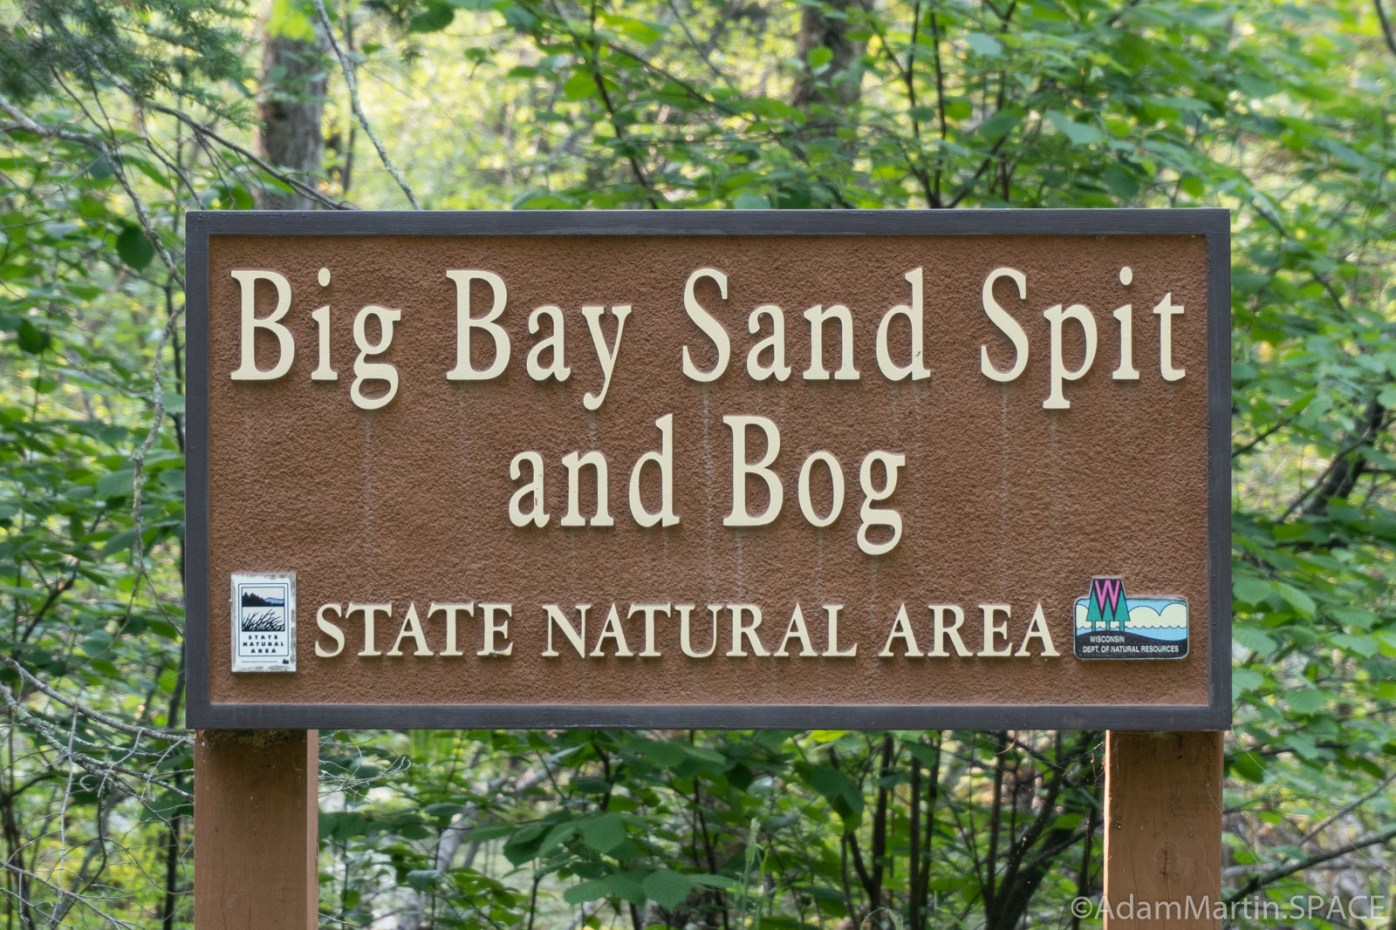 Big Bay State Park - Sign for Big Bay Sand Spit and Bog State Natural Area